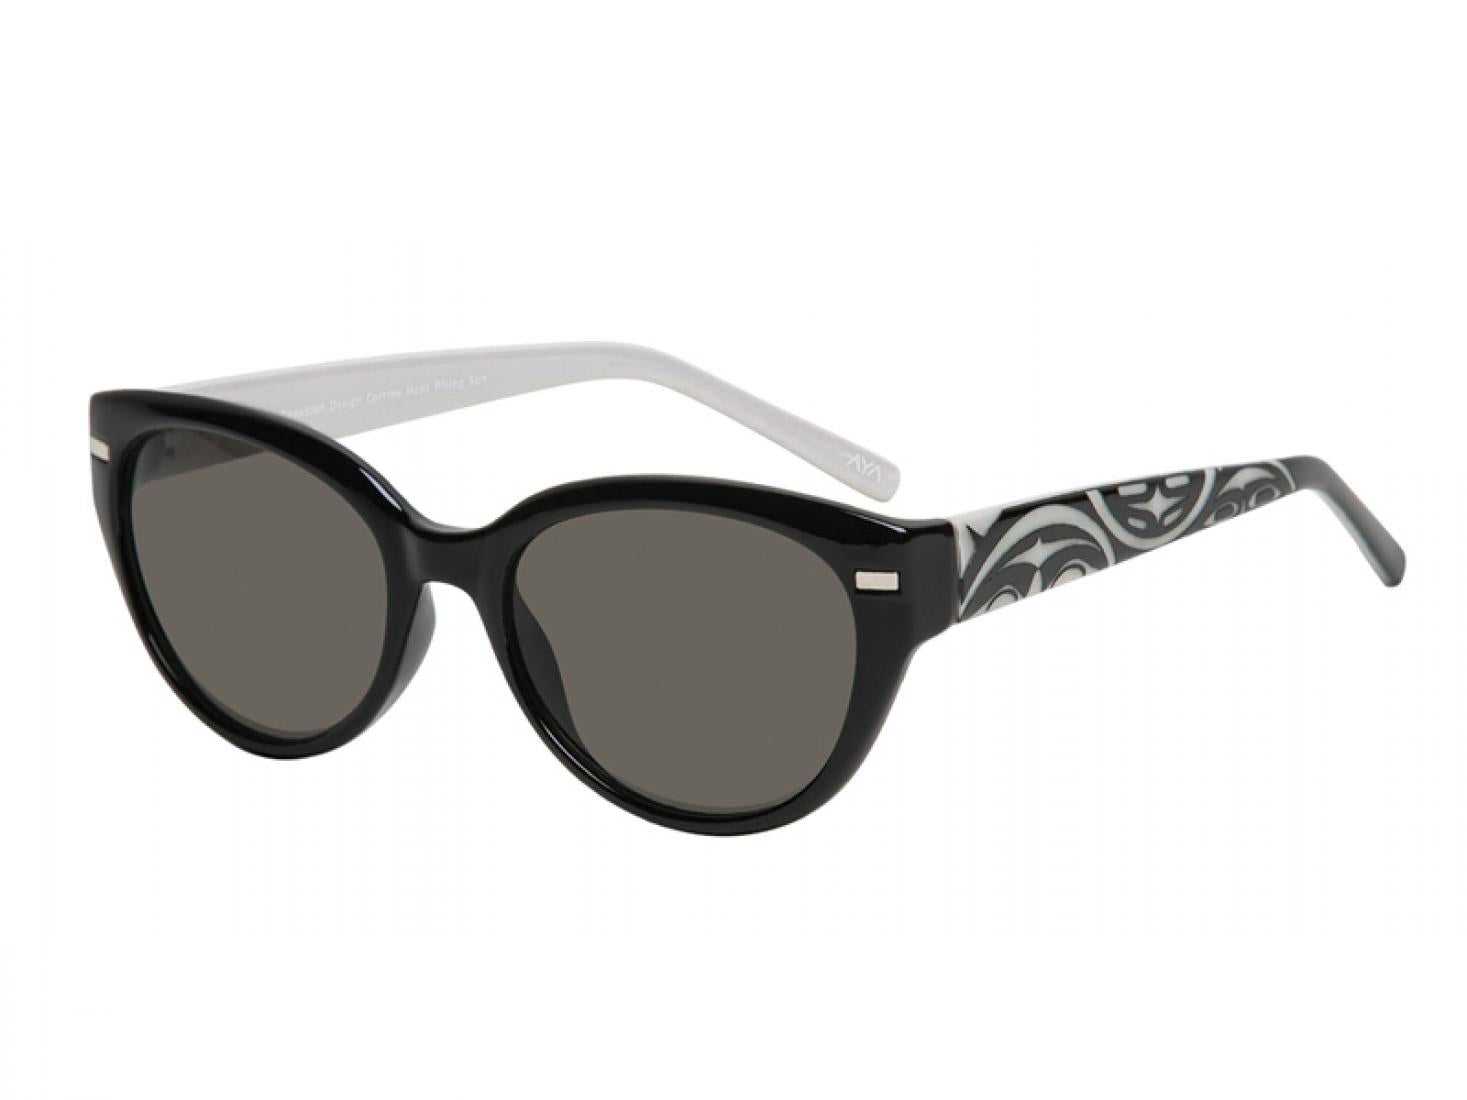 """Soleil"" Sunglasses with Rising Sun Design"